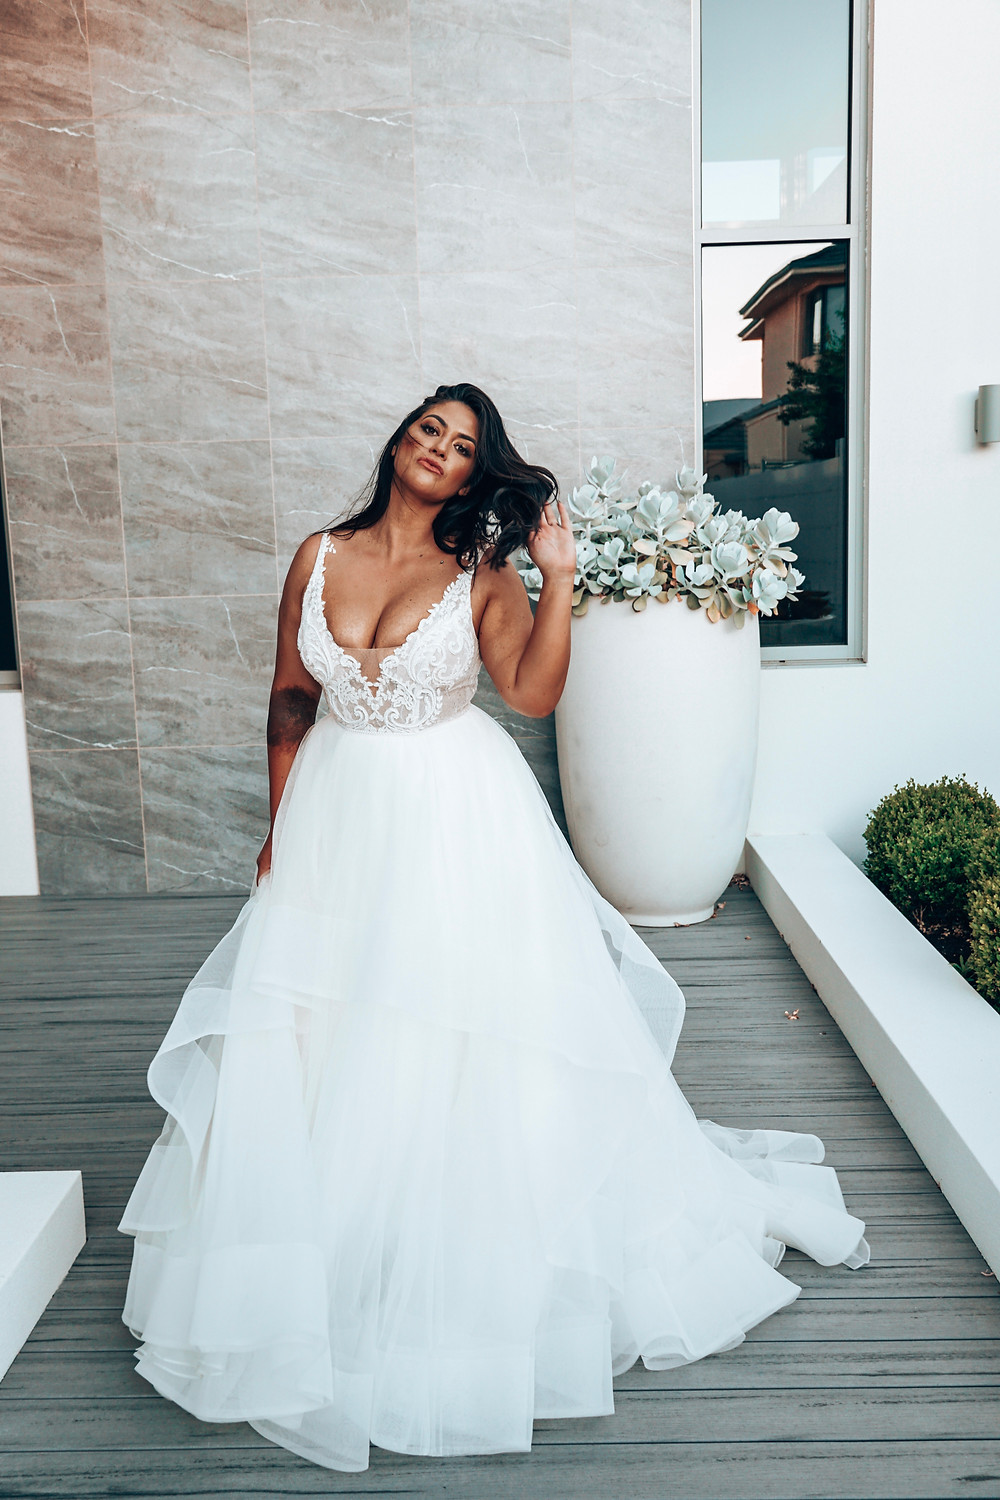 Cloud by Rachel Rose. Wedding dress suggestion for pear / triangle shaped bride. Layered tulle skirt ballgown with embroidery detail bodice.